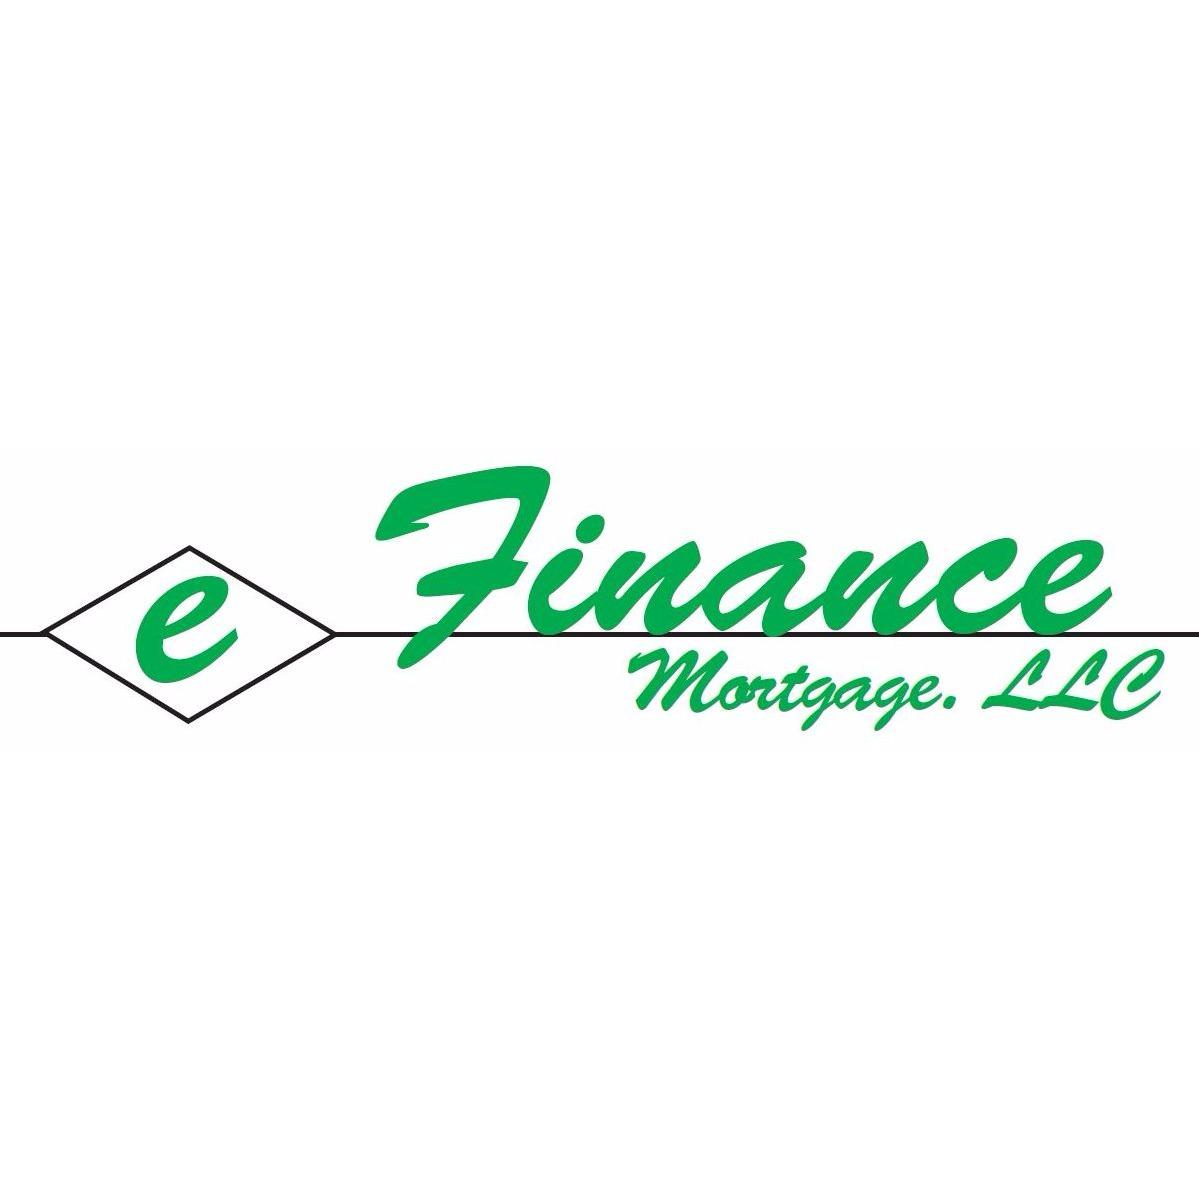 e-Finance Mortgage, LLC